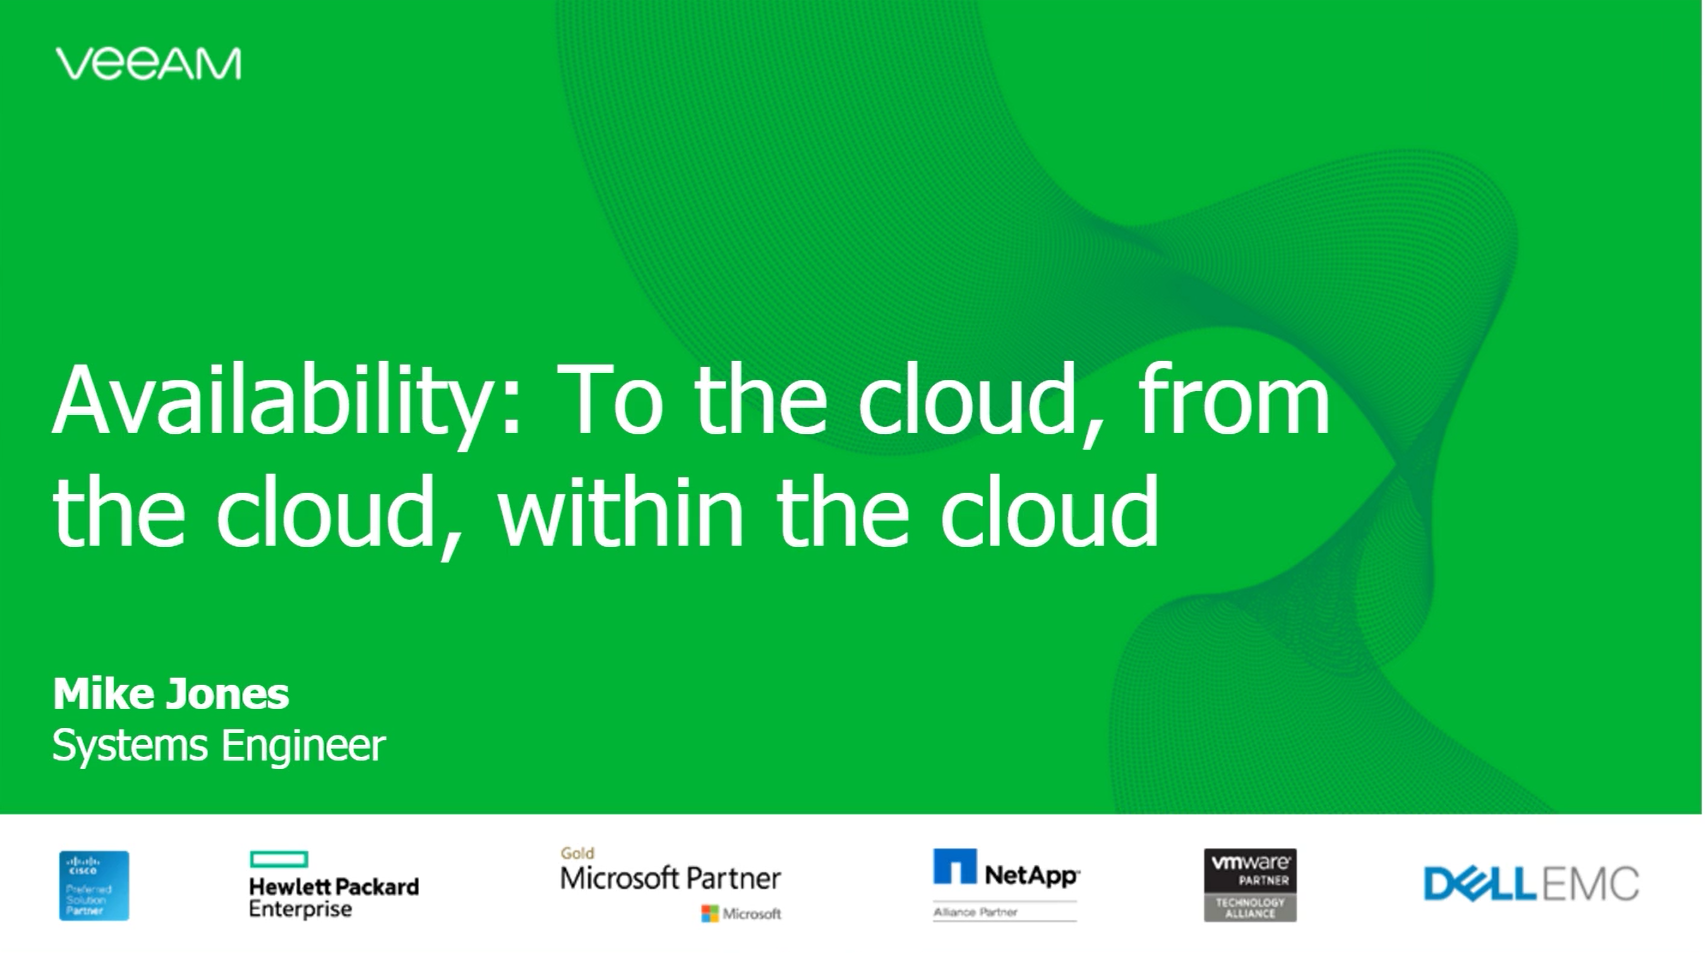 Availability: To the cloud, from the cloud, within the cloud